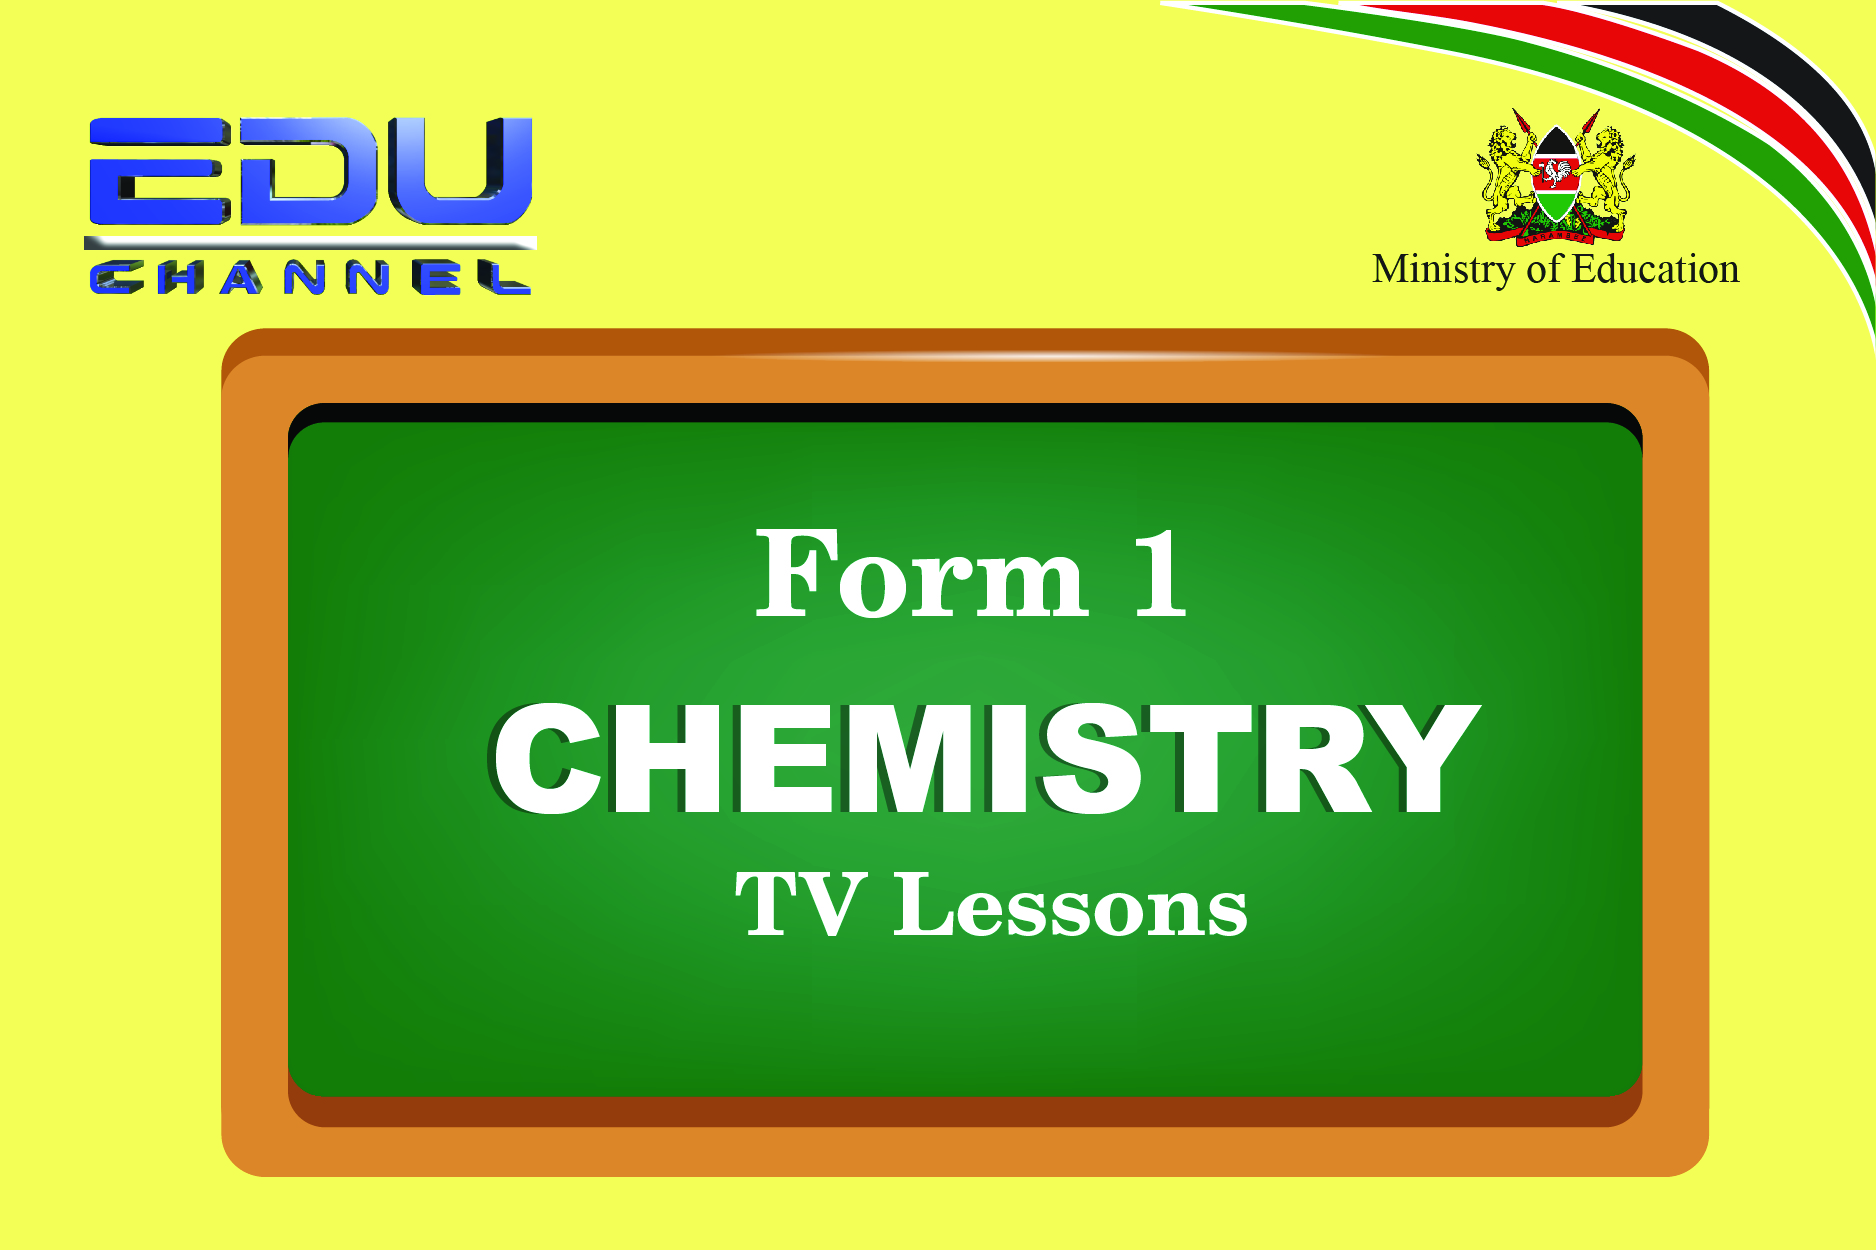 Form 1 Chemistry Lesson 1: Introduction to Chemistry